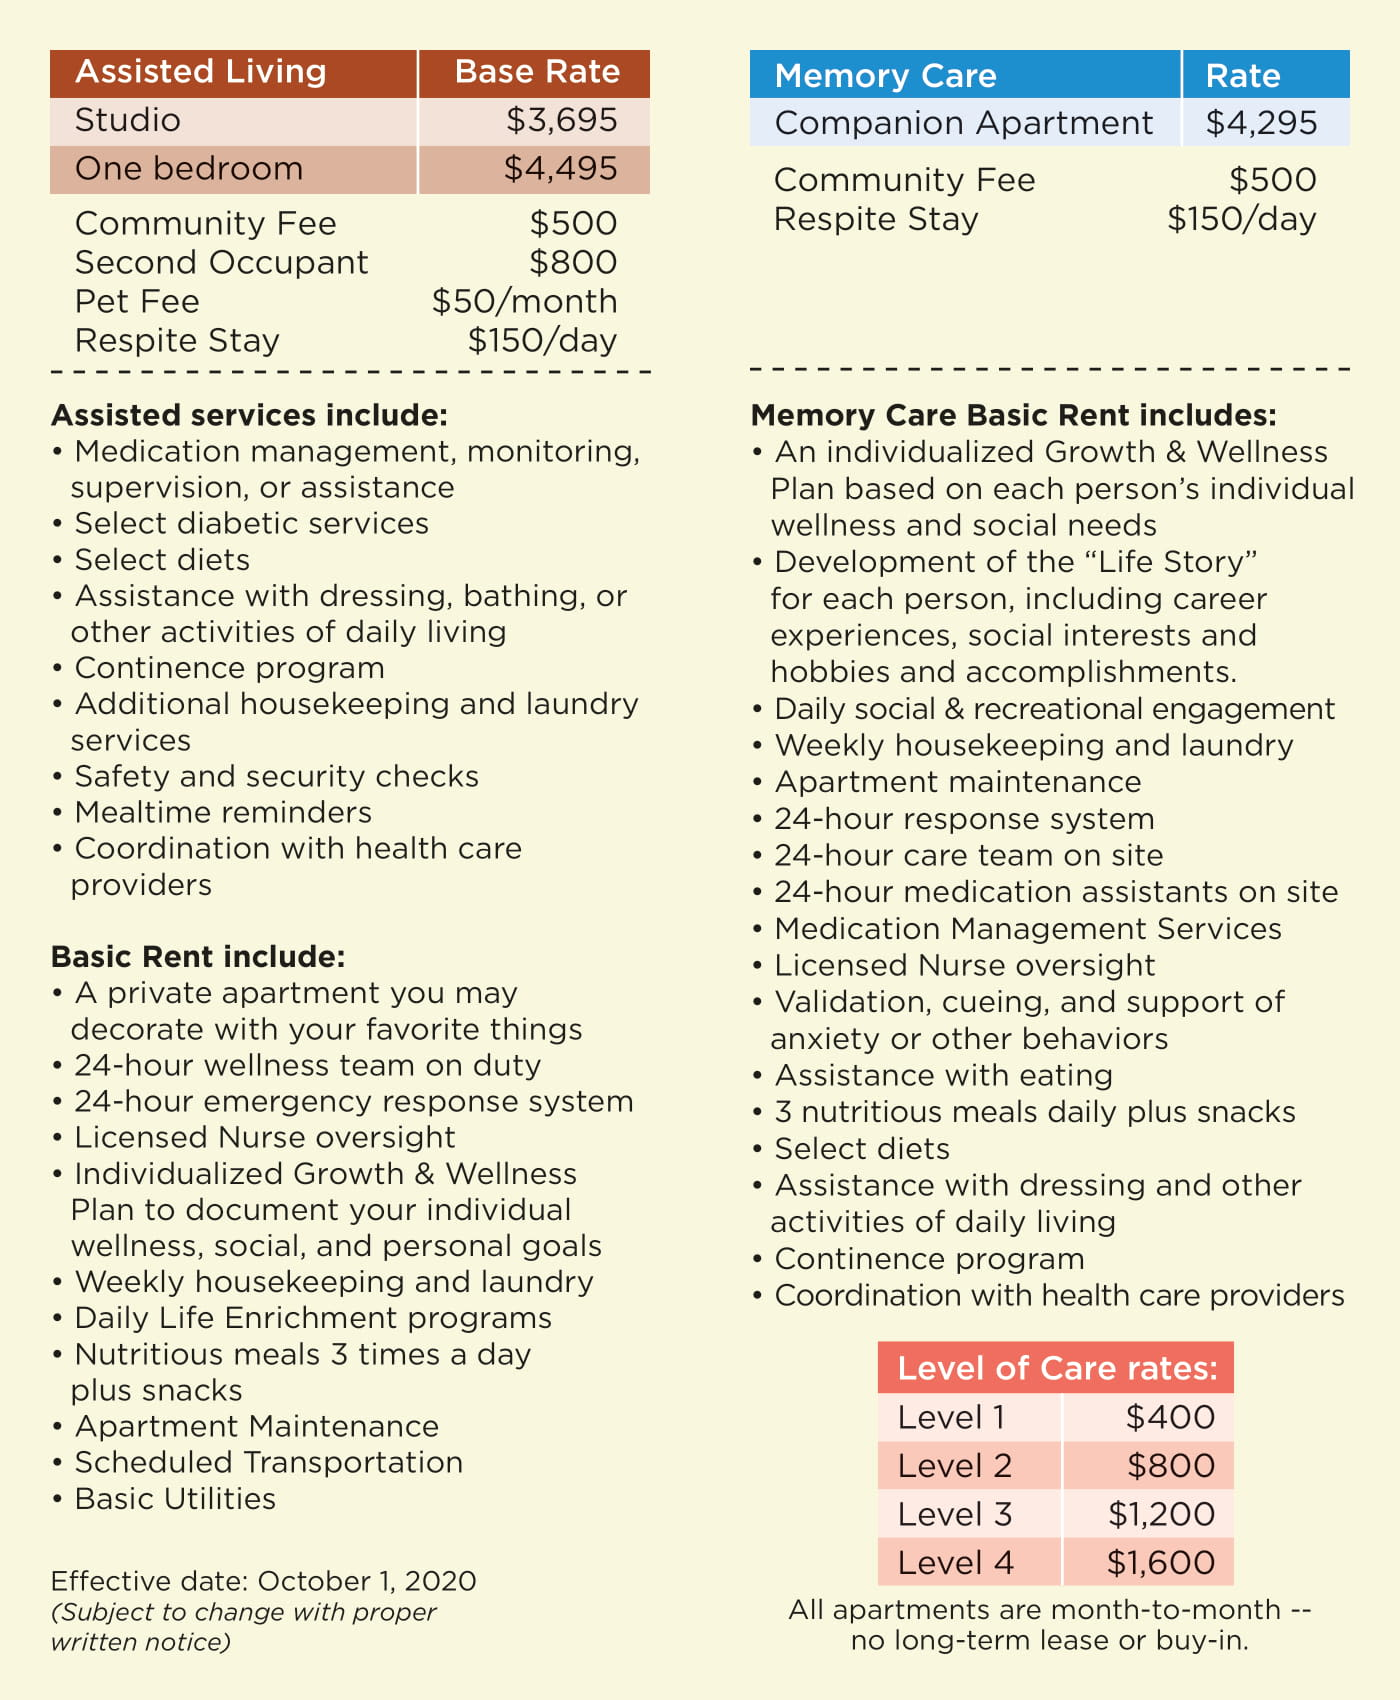 Desert Peaks Assisted Living and Memory Care rates